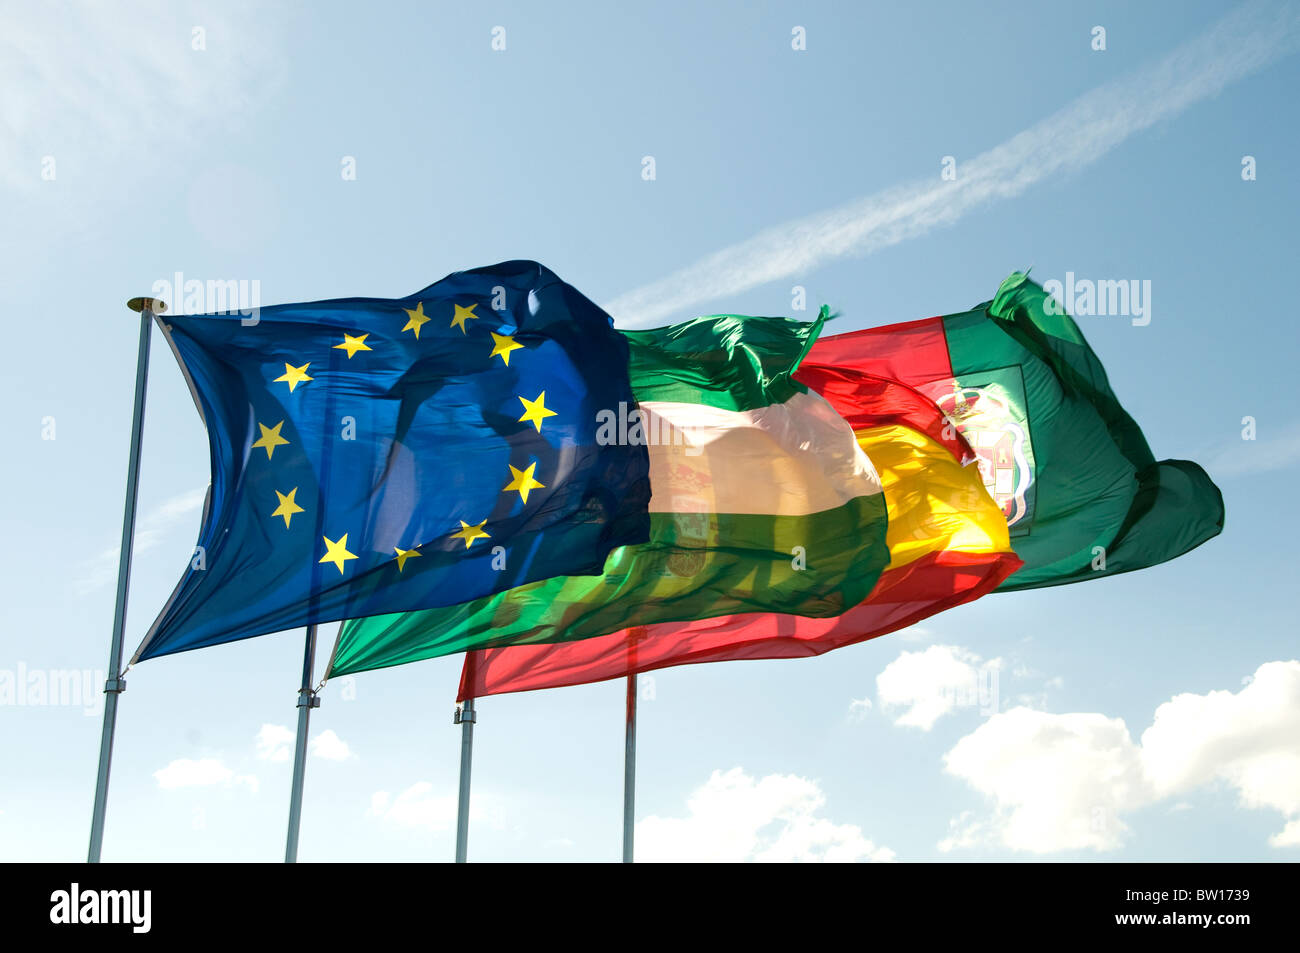 Granada Spain Flag Flags European Europe  Spanish Andalucian - Stock Image